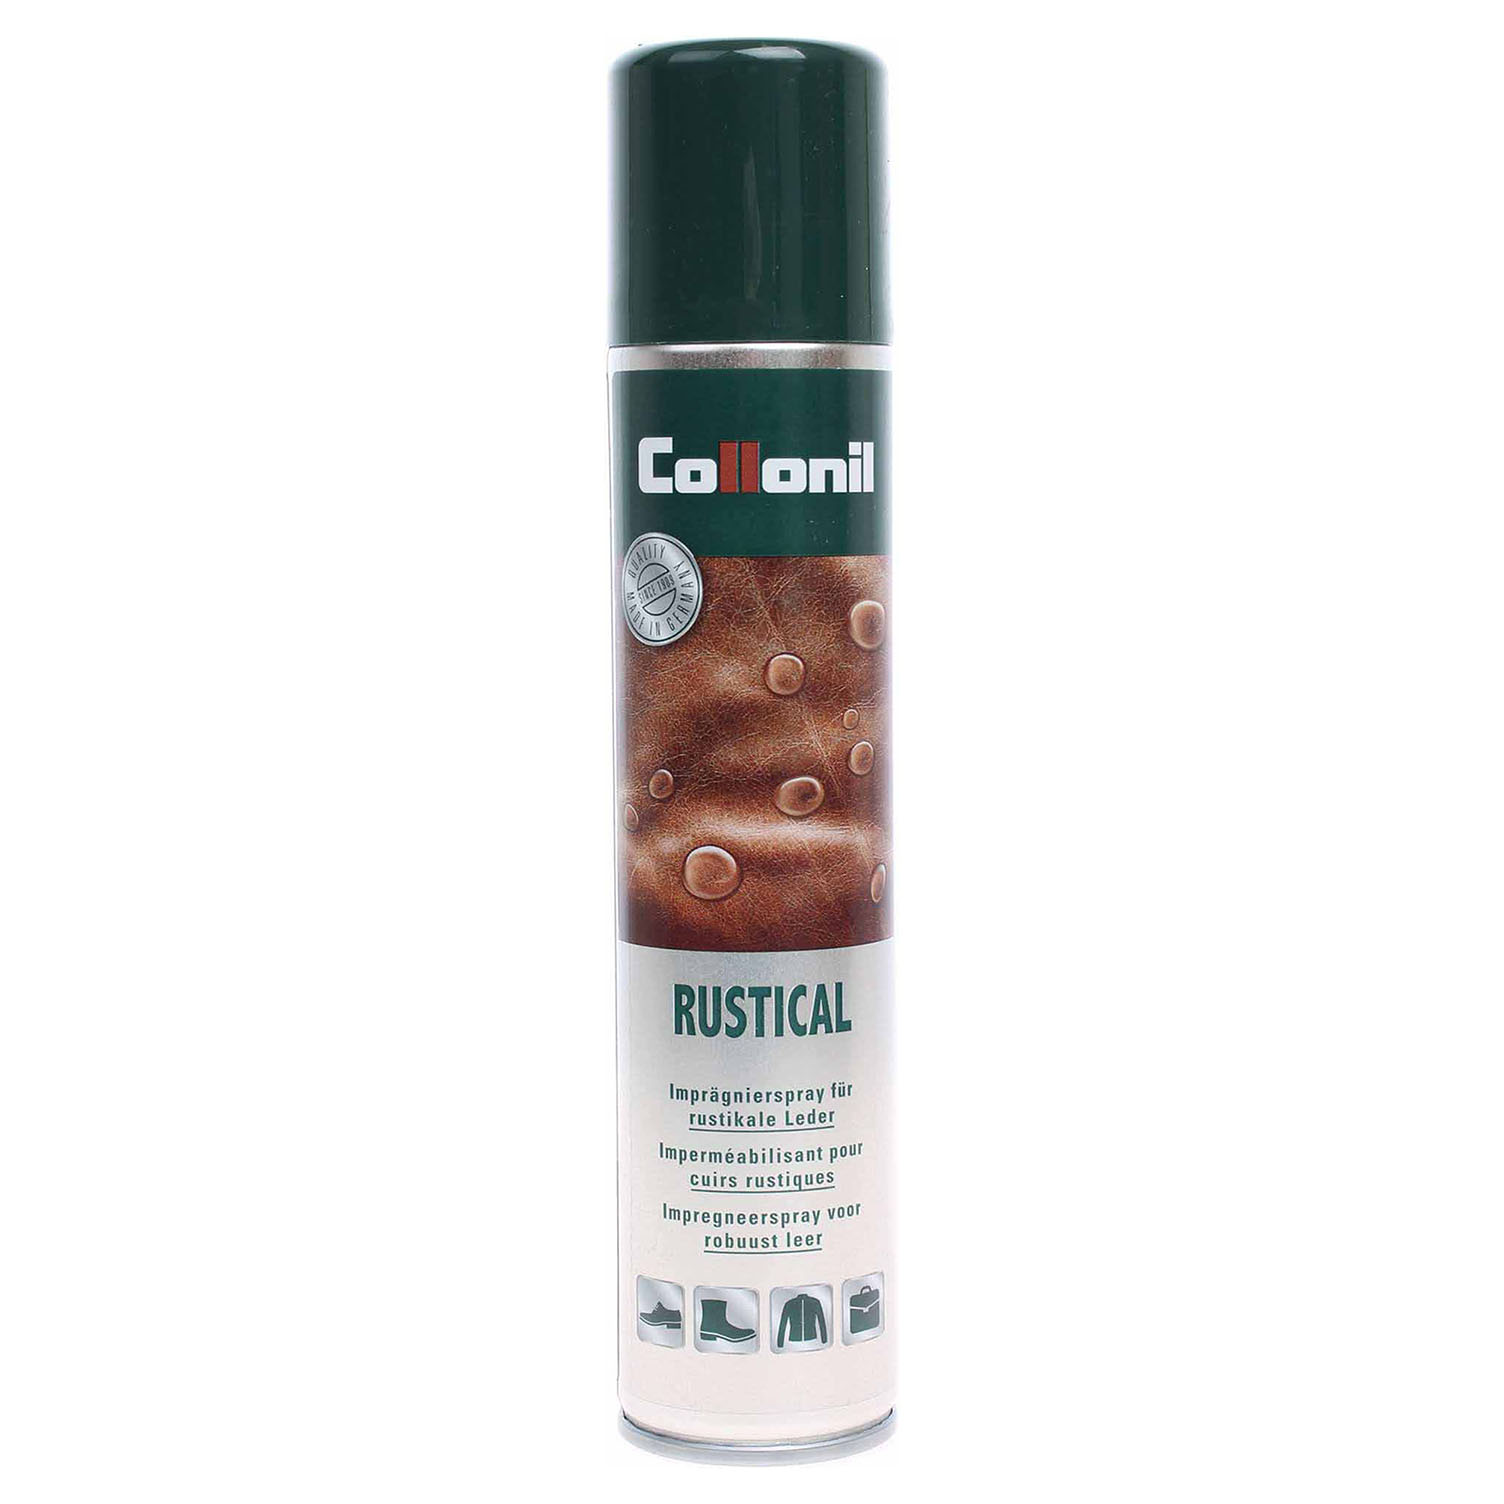 Collonil Rustikal spray